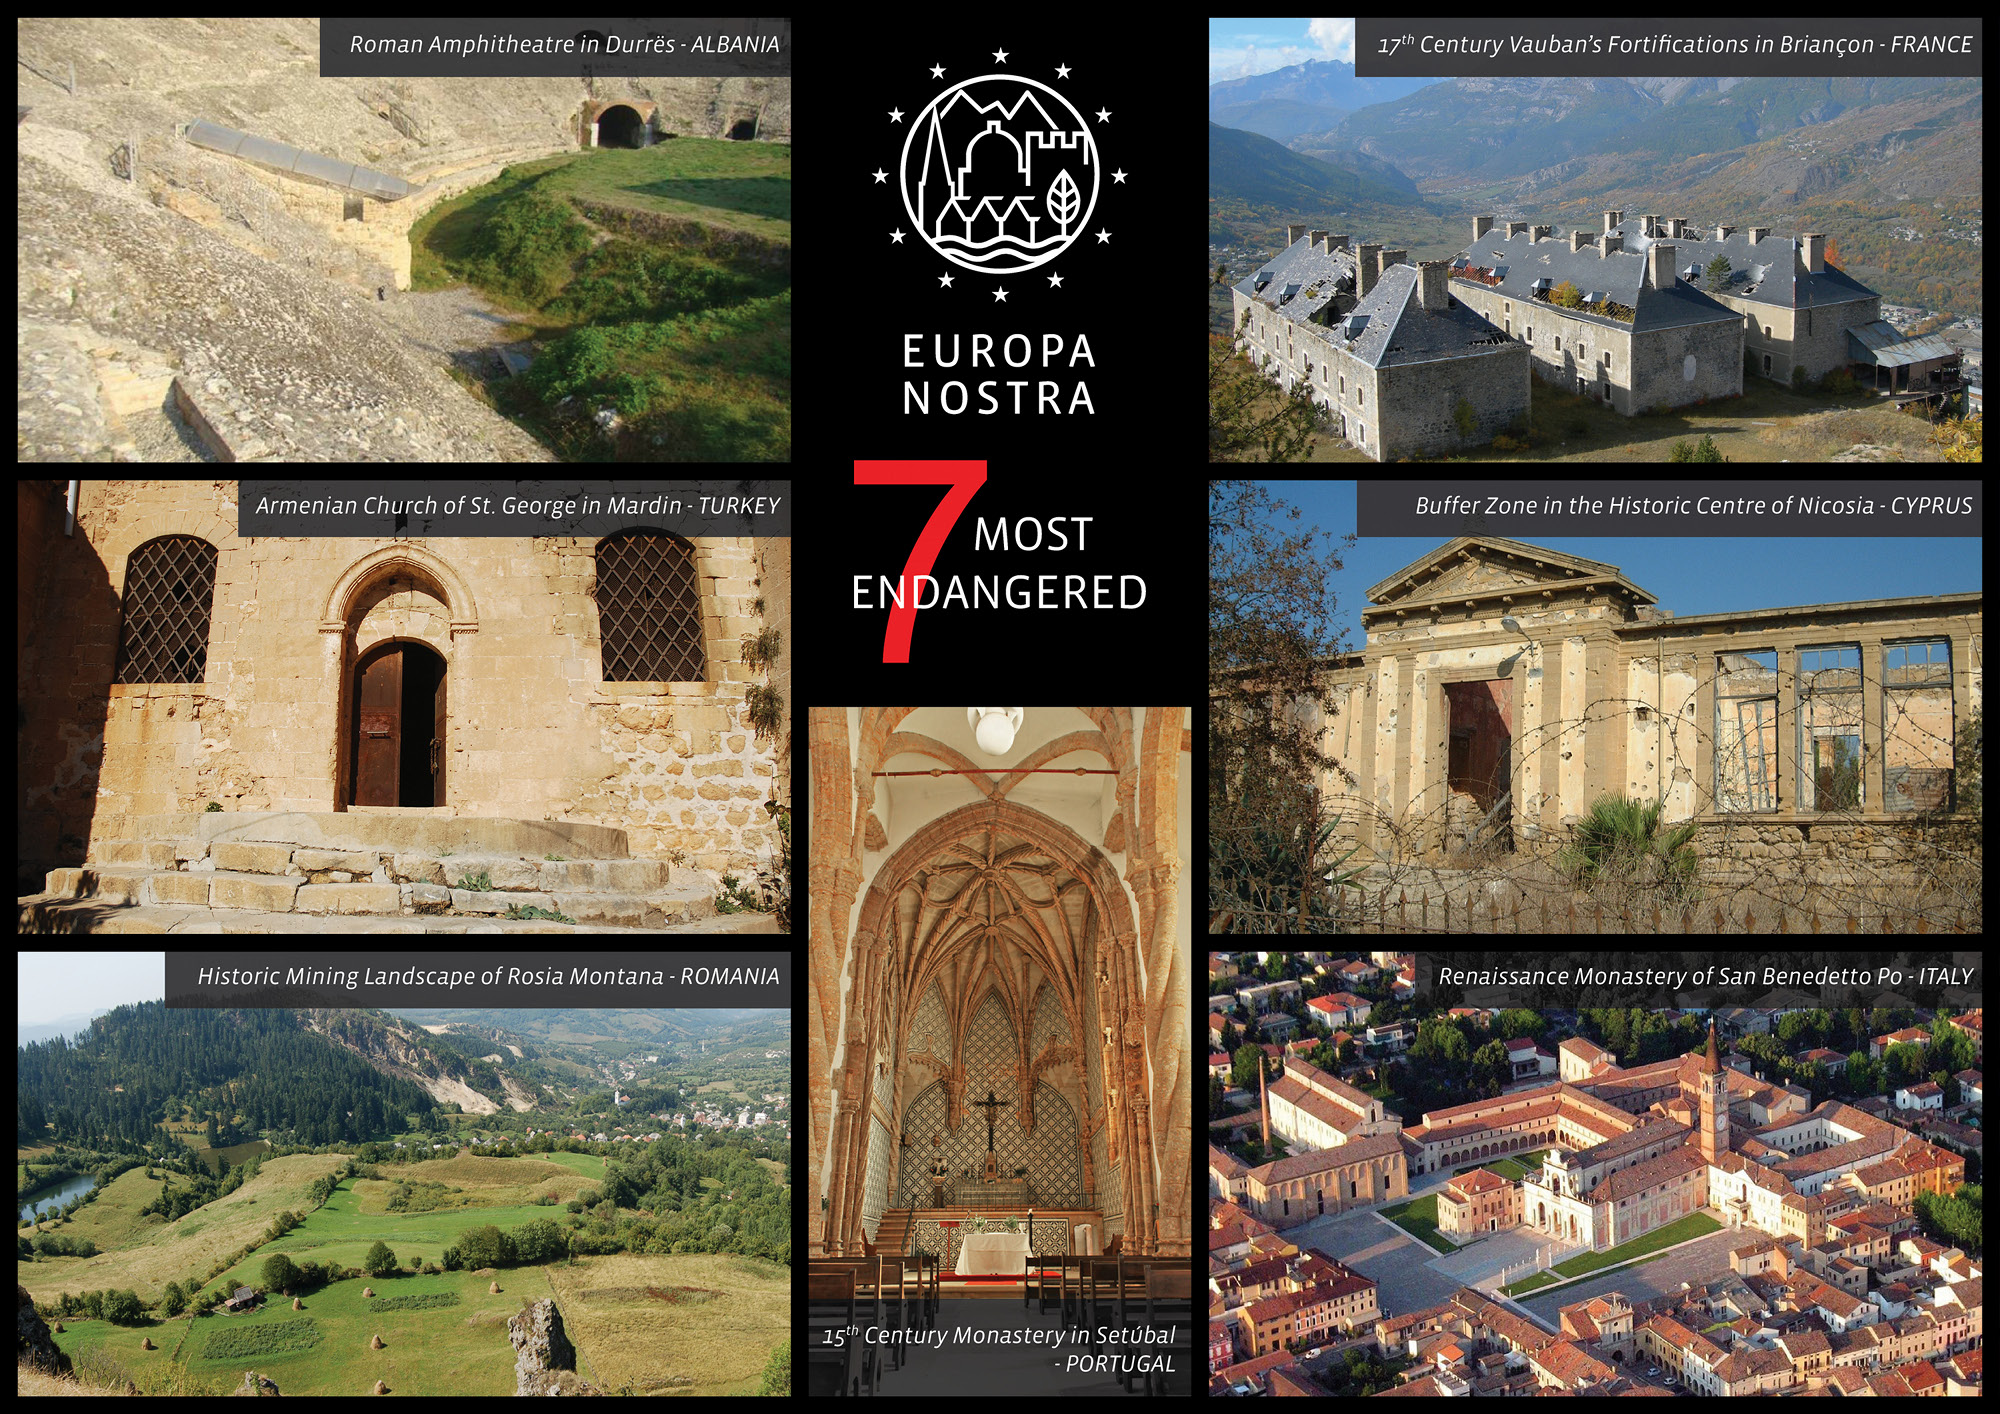 2013 Europe S 7 Most Endangered Monuments And Sites Announced